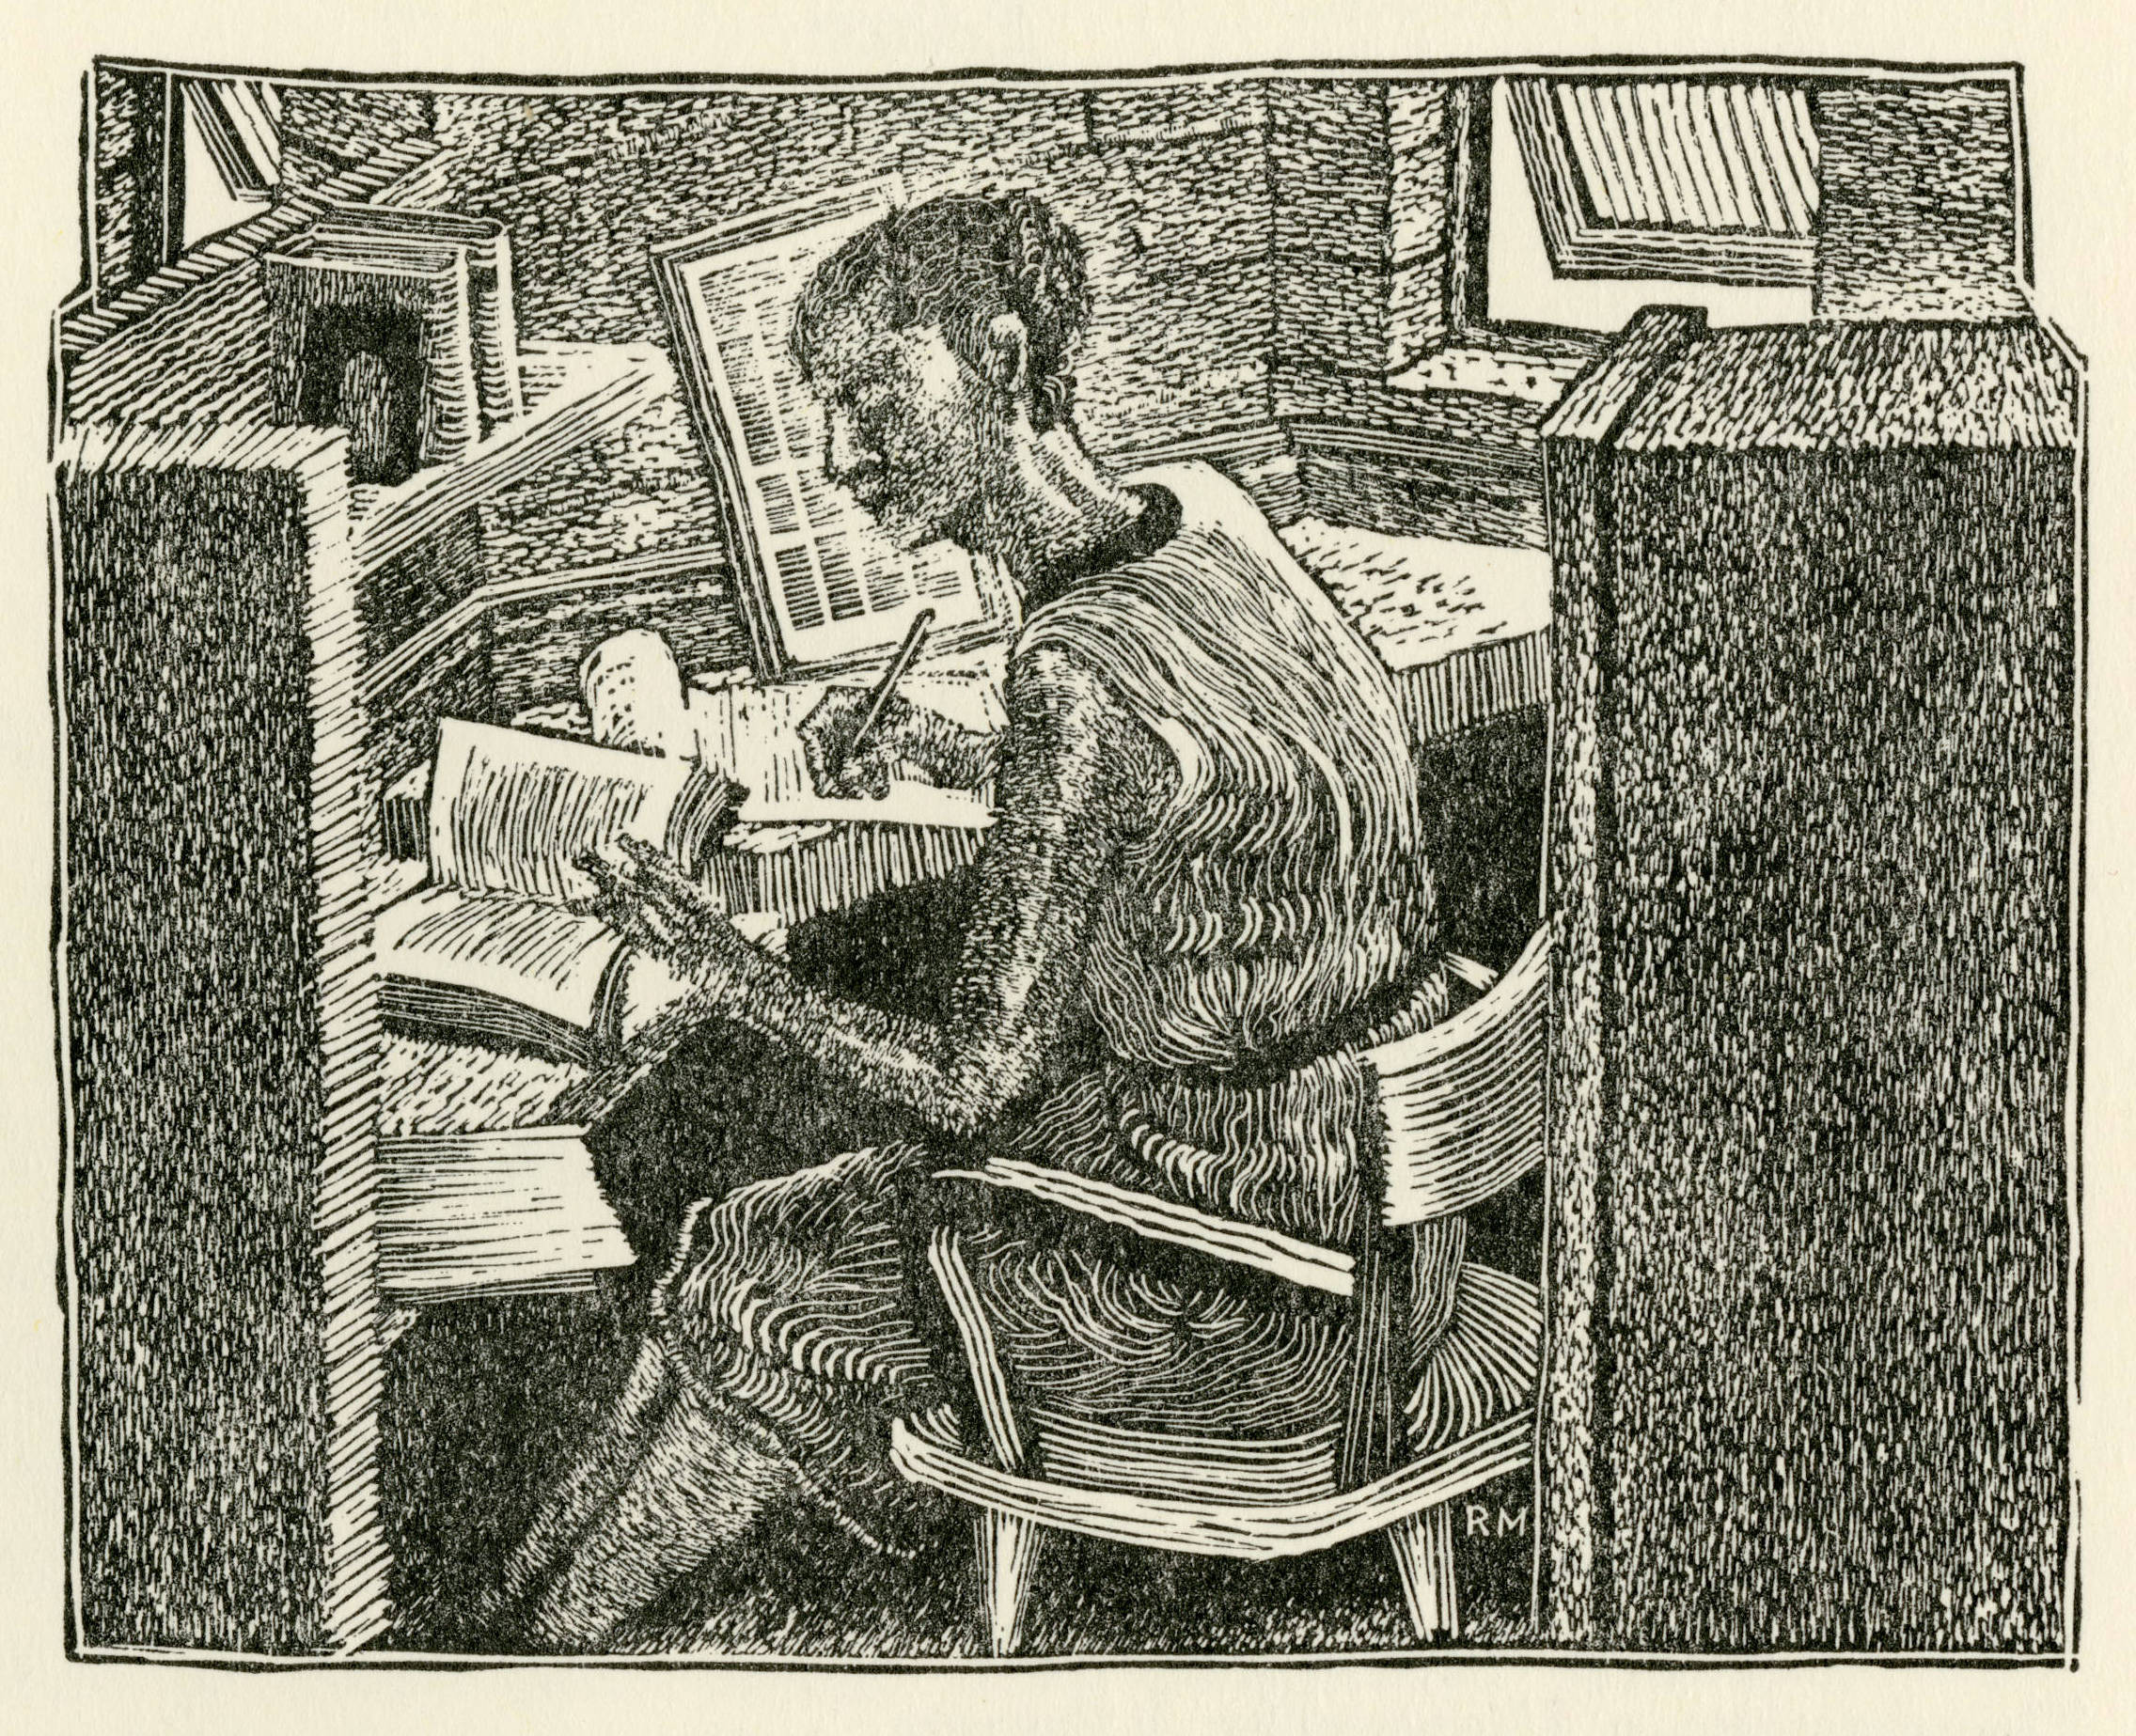 etching of woman at a desk with books; black ink on cream colored paper